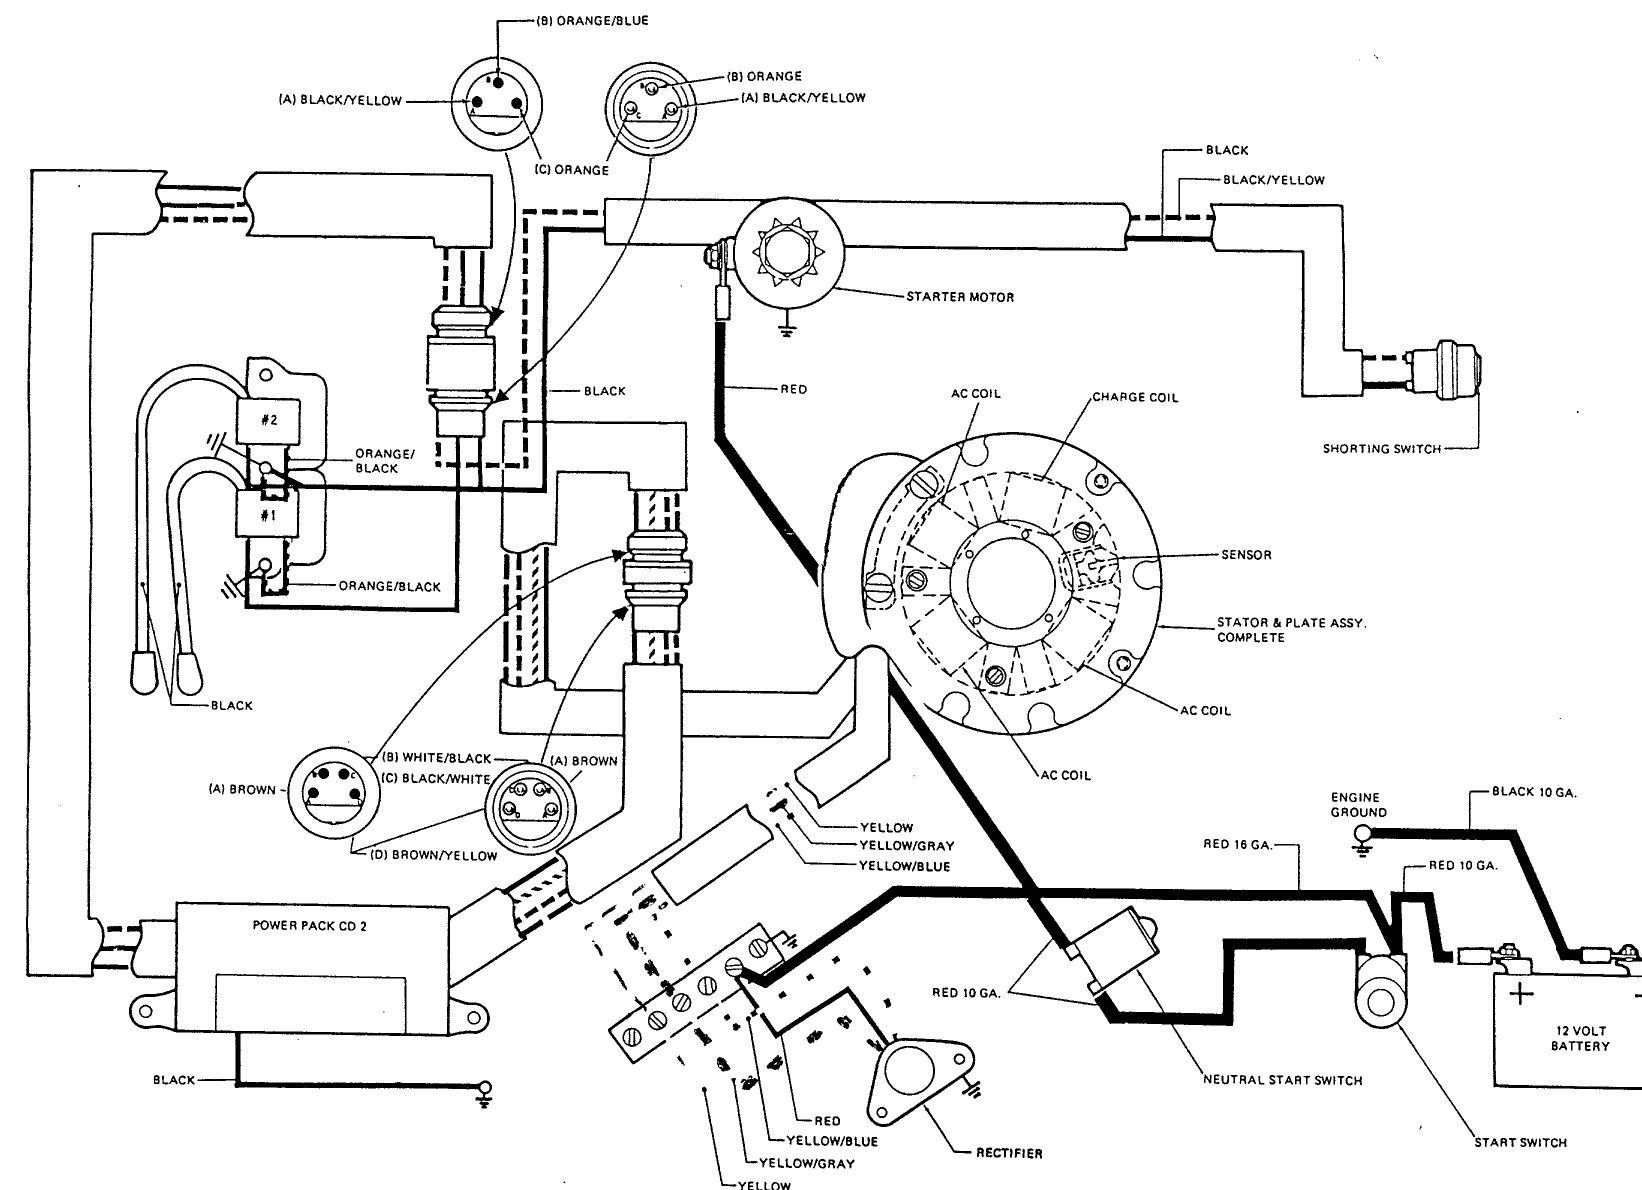 Carburetor Fuel Line Diagram Wiring Diagram Schematic